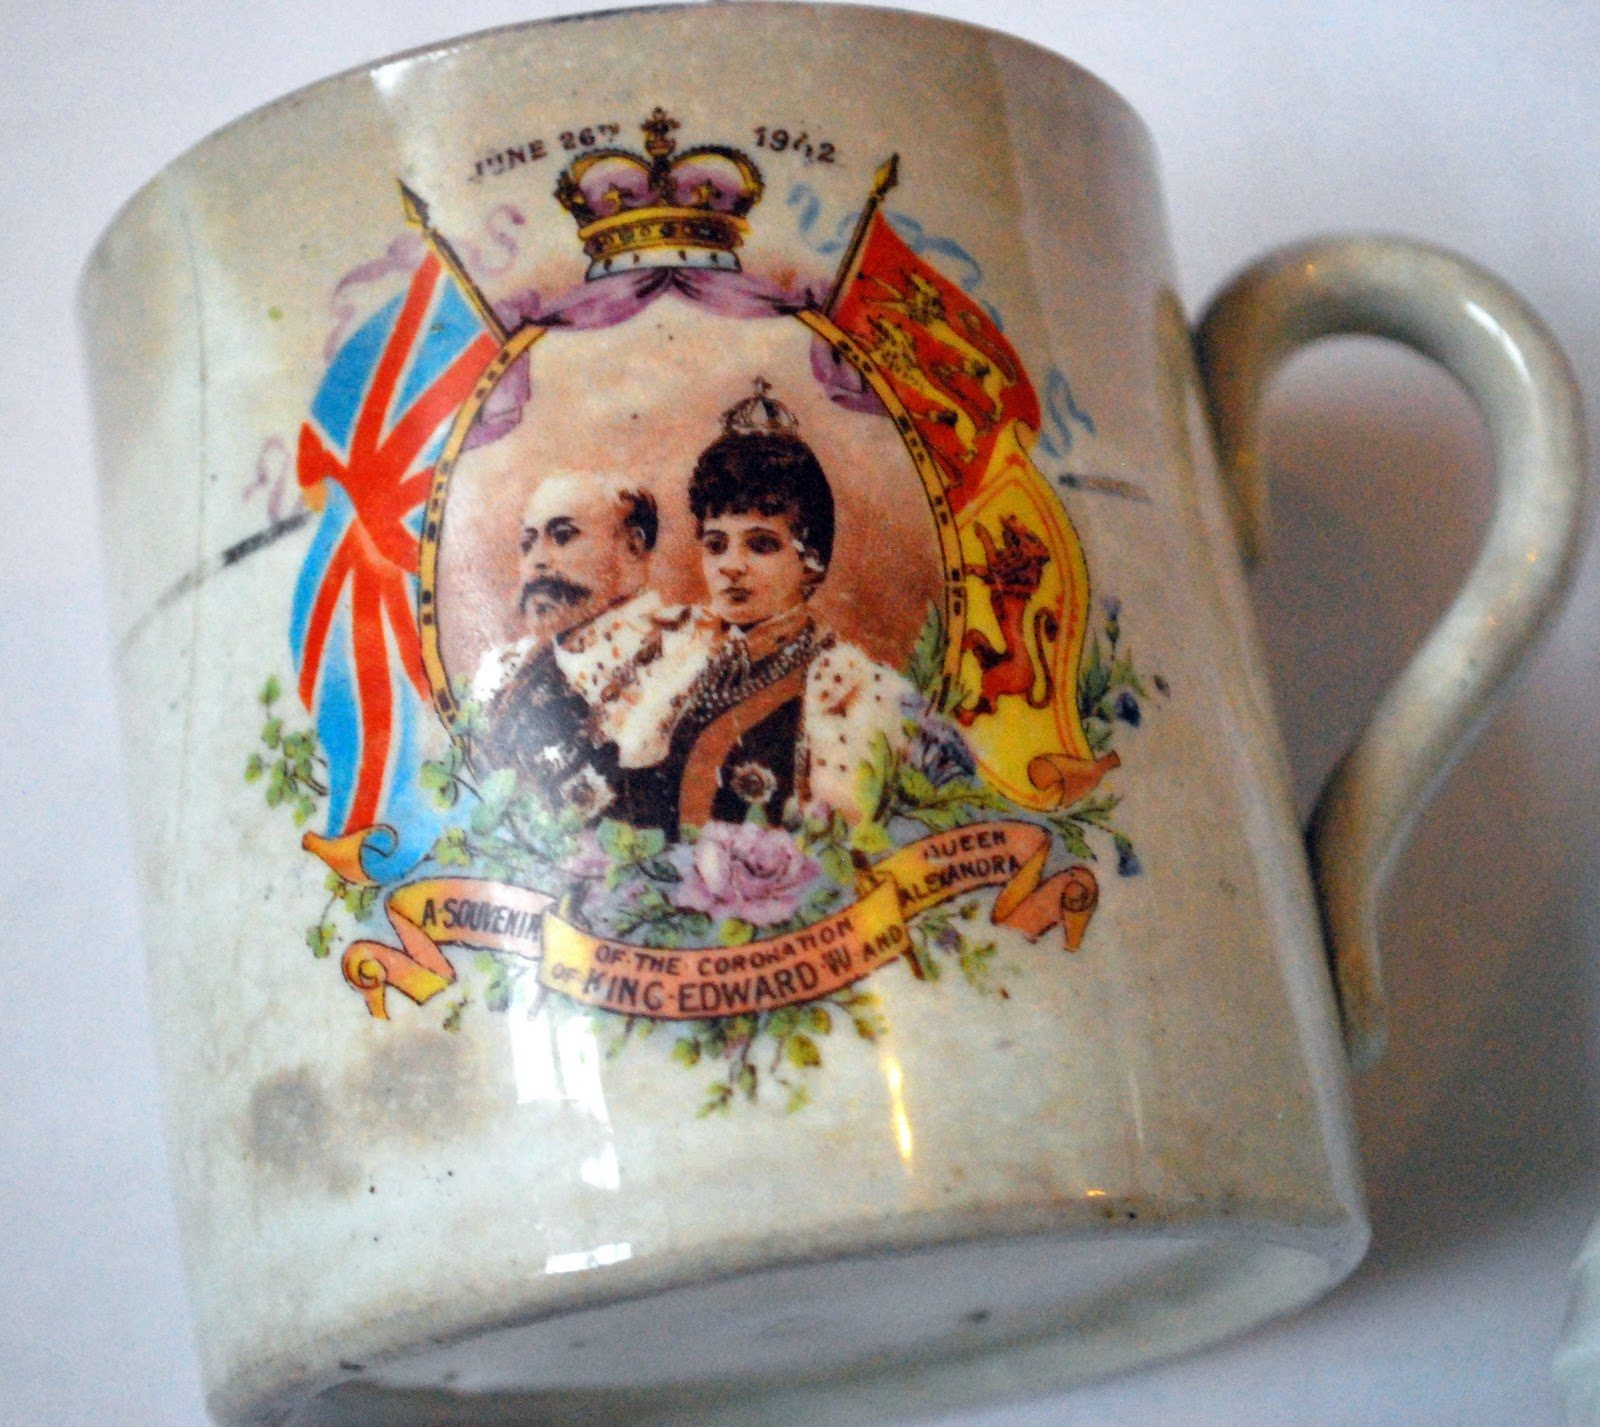 King Edward Coronation Mug